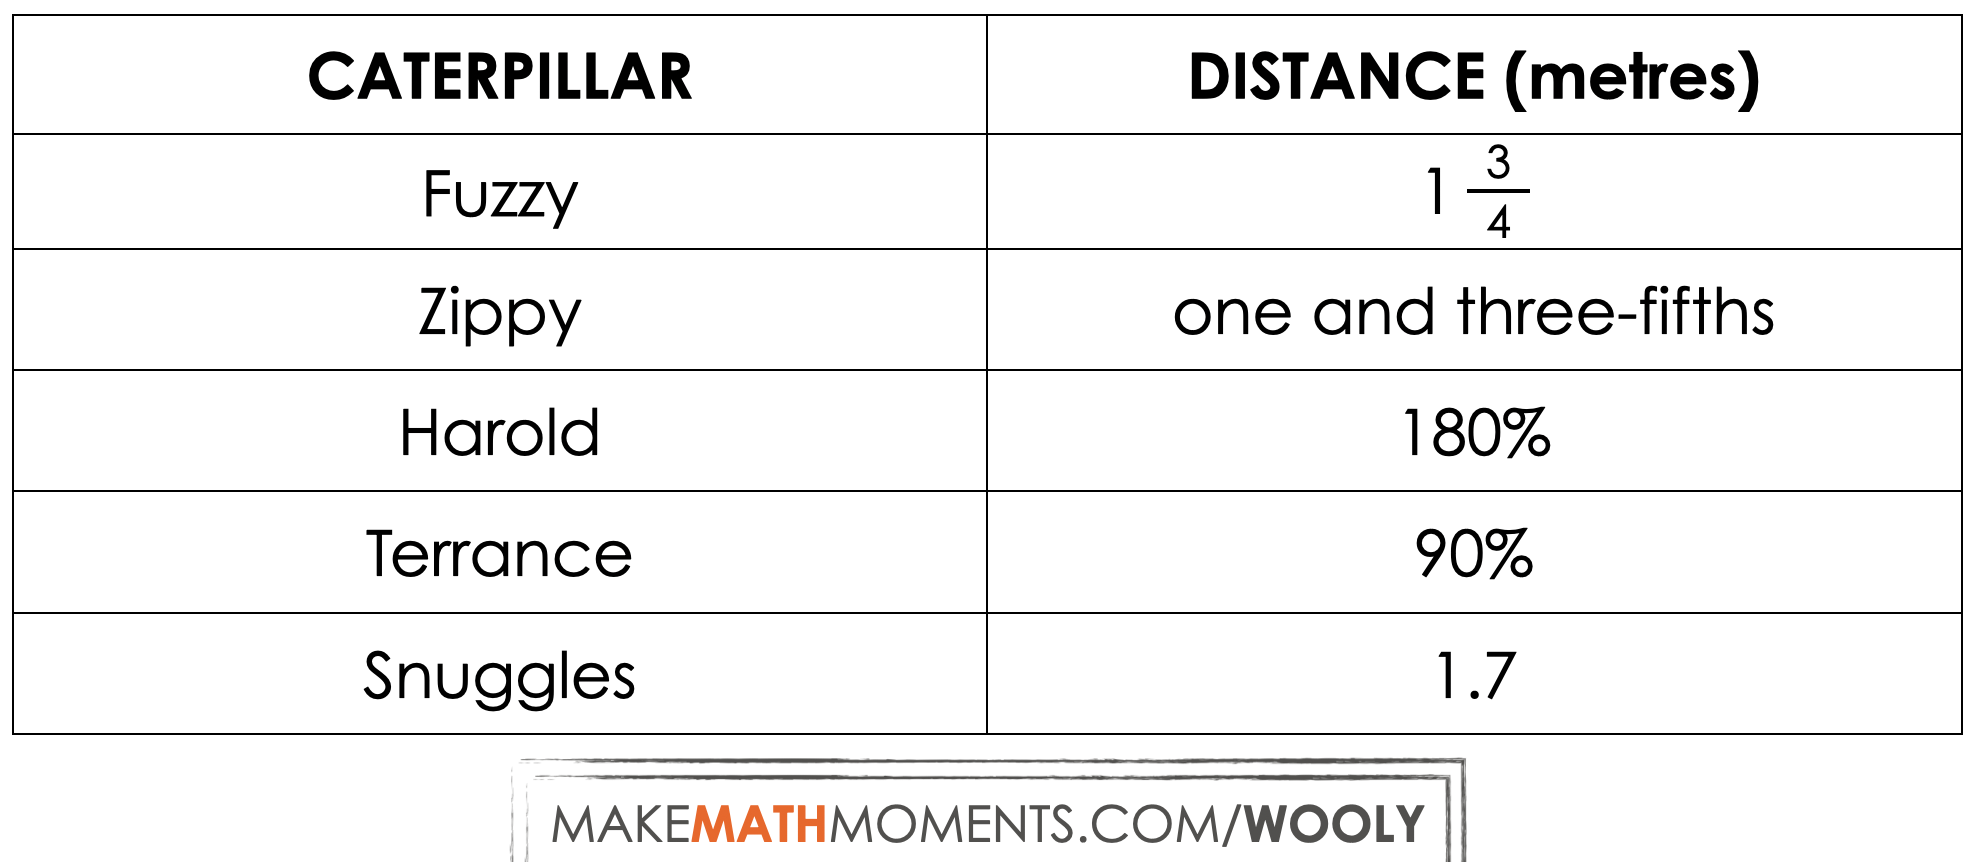 Wooly-Worm-Race-Day-5-03-Sense-Making-Table.png